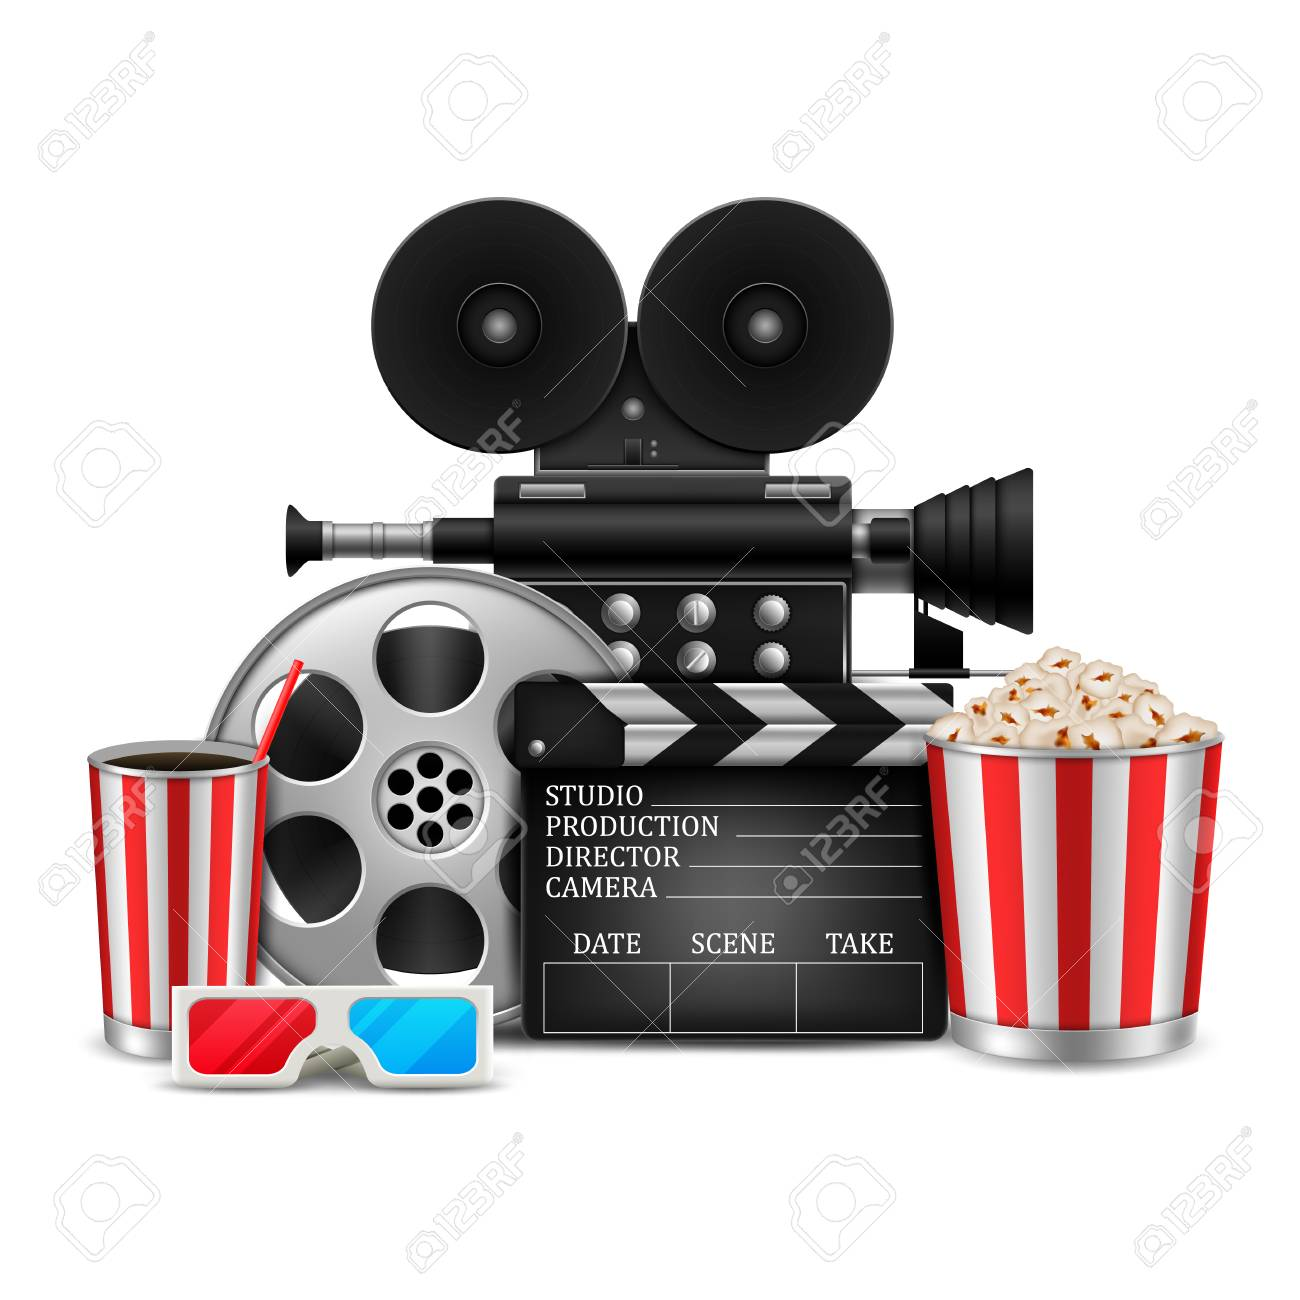 Cinema Concept With Movie Theatre Elements Set Of Film Reel Royalty Free Cliparts Vectors And Stock Illustration Image 110737846